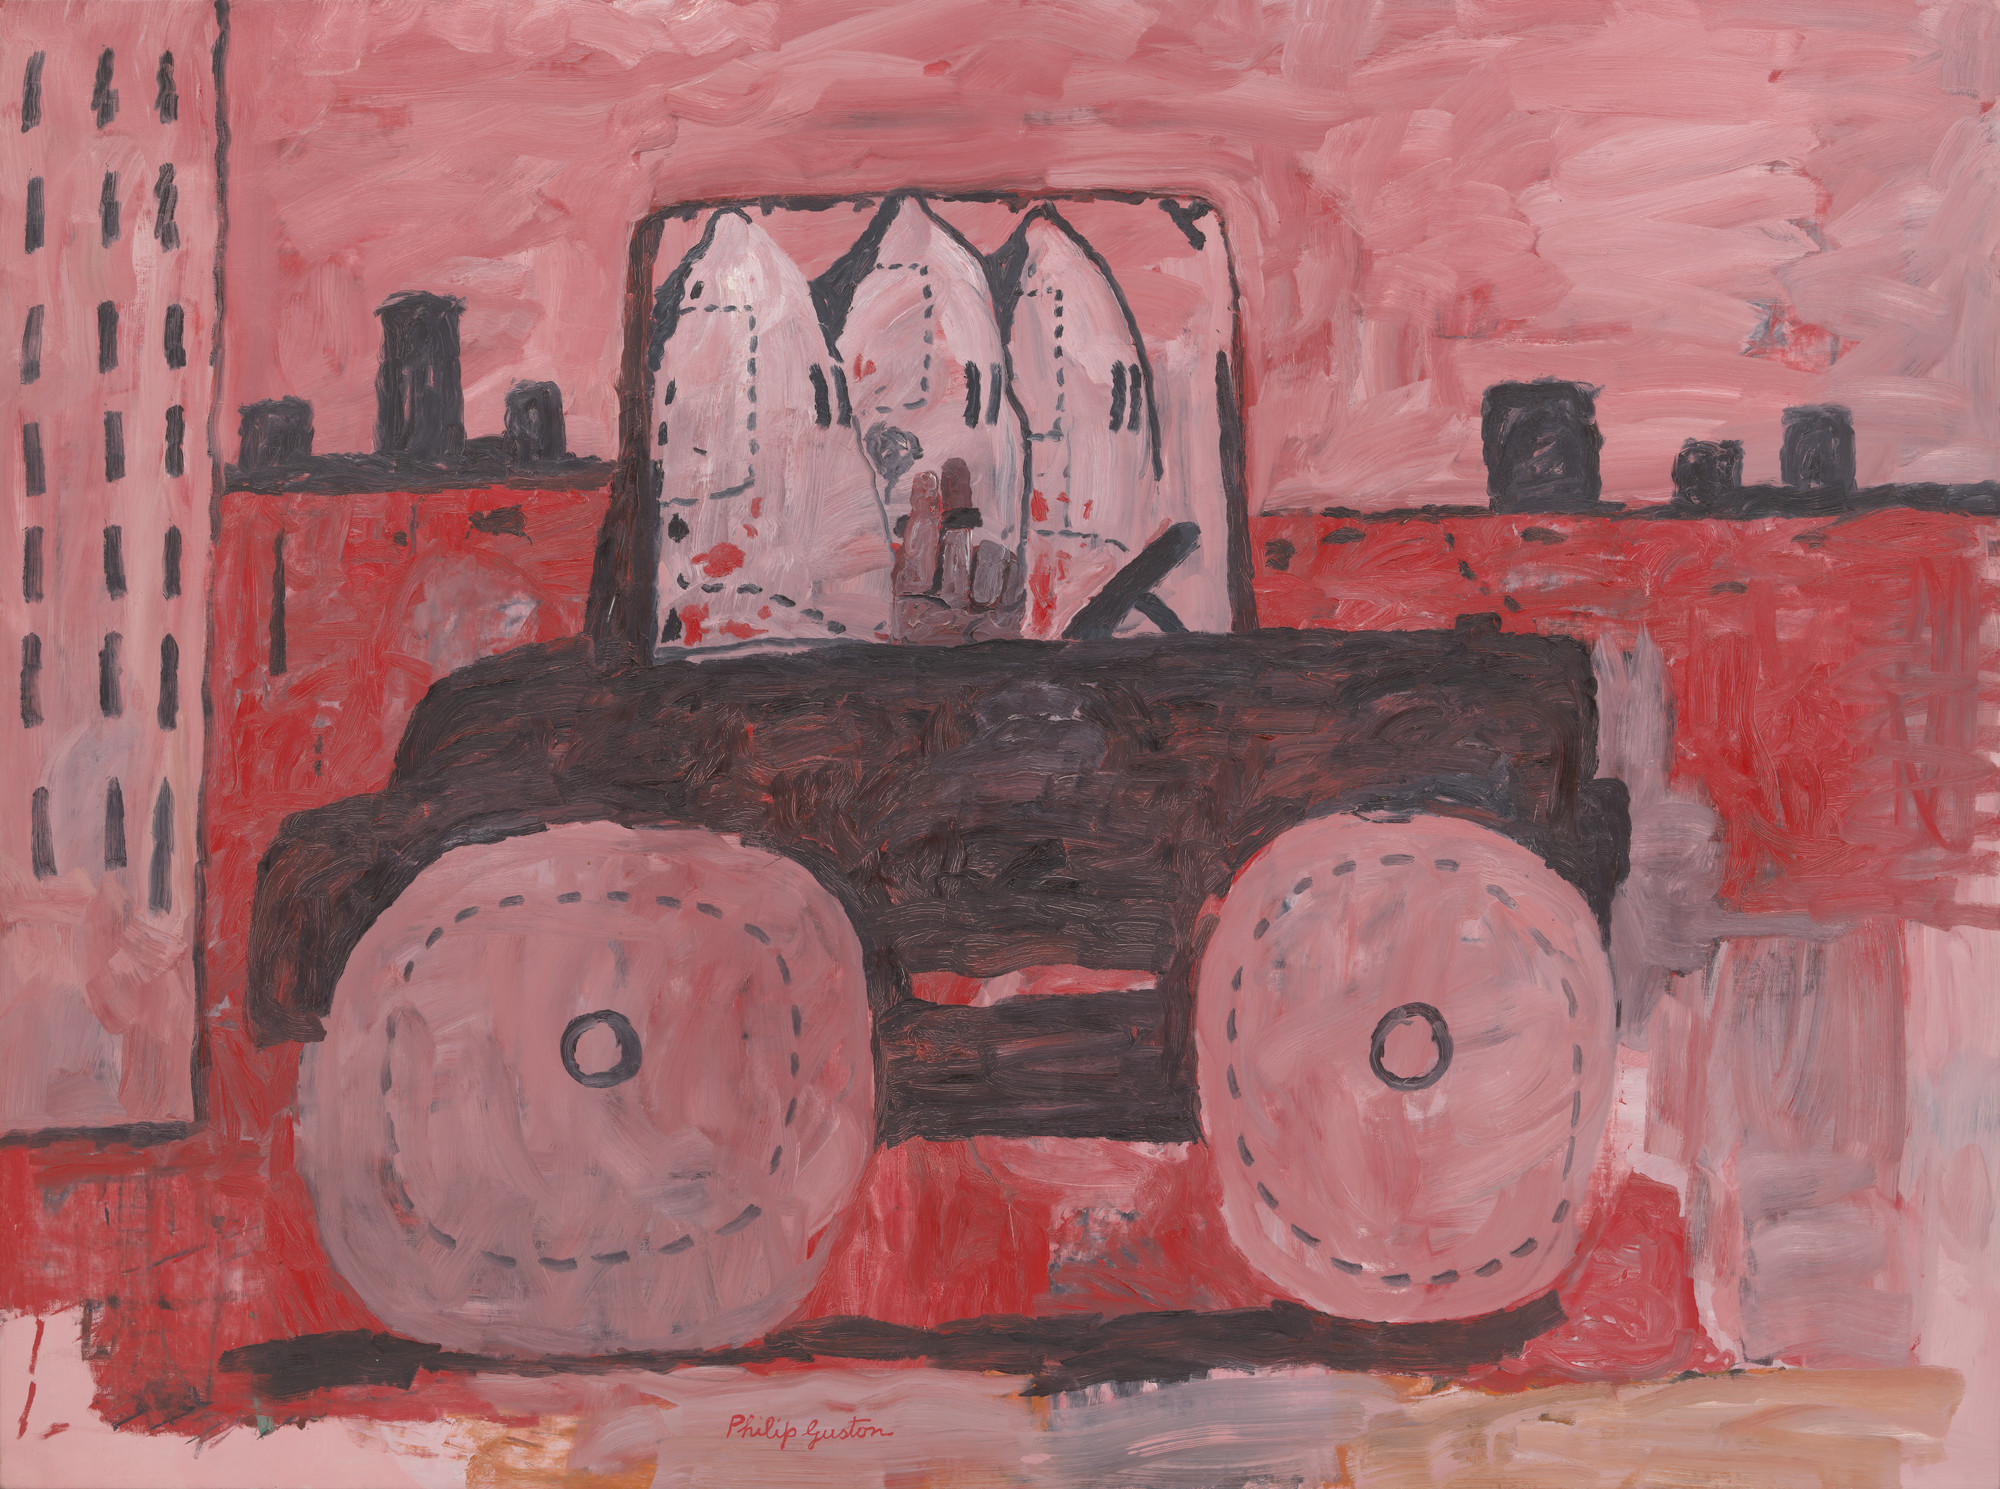 Philip Guston. City Limits. 1969